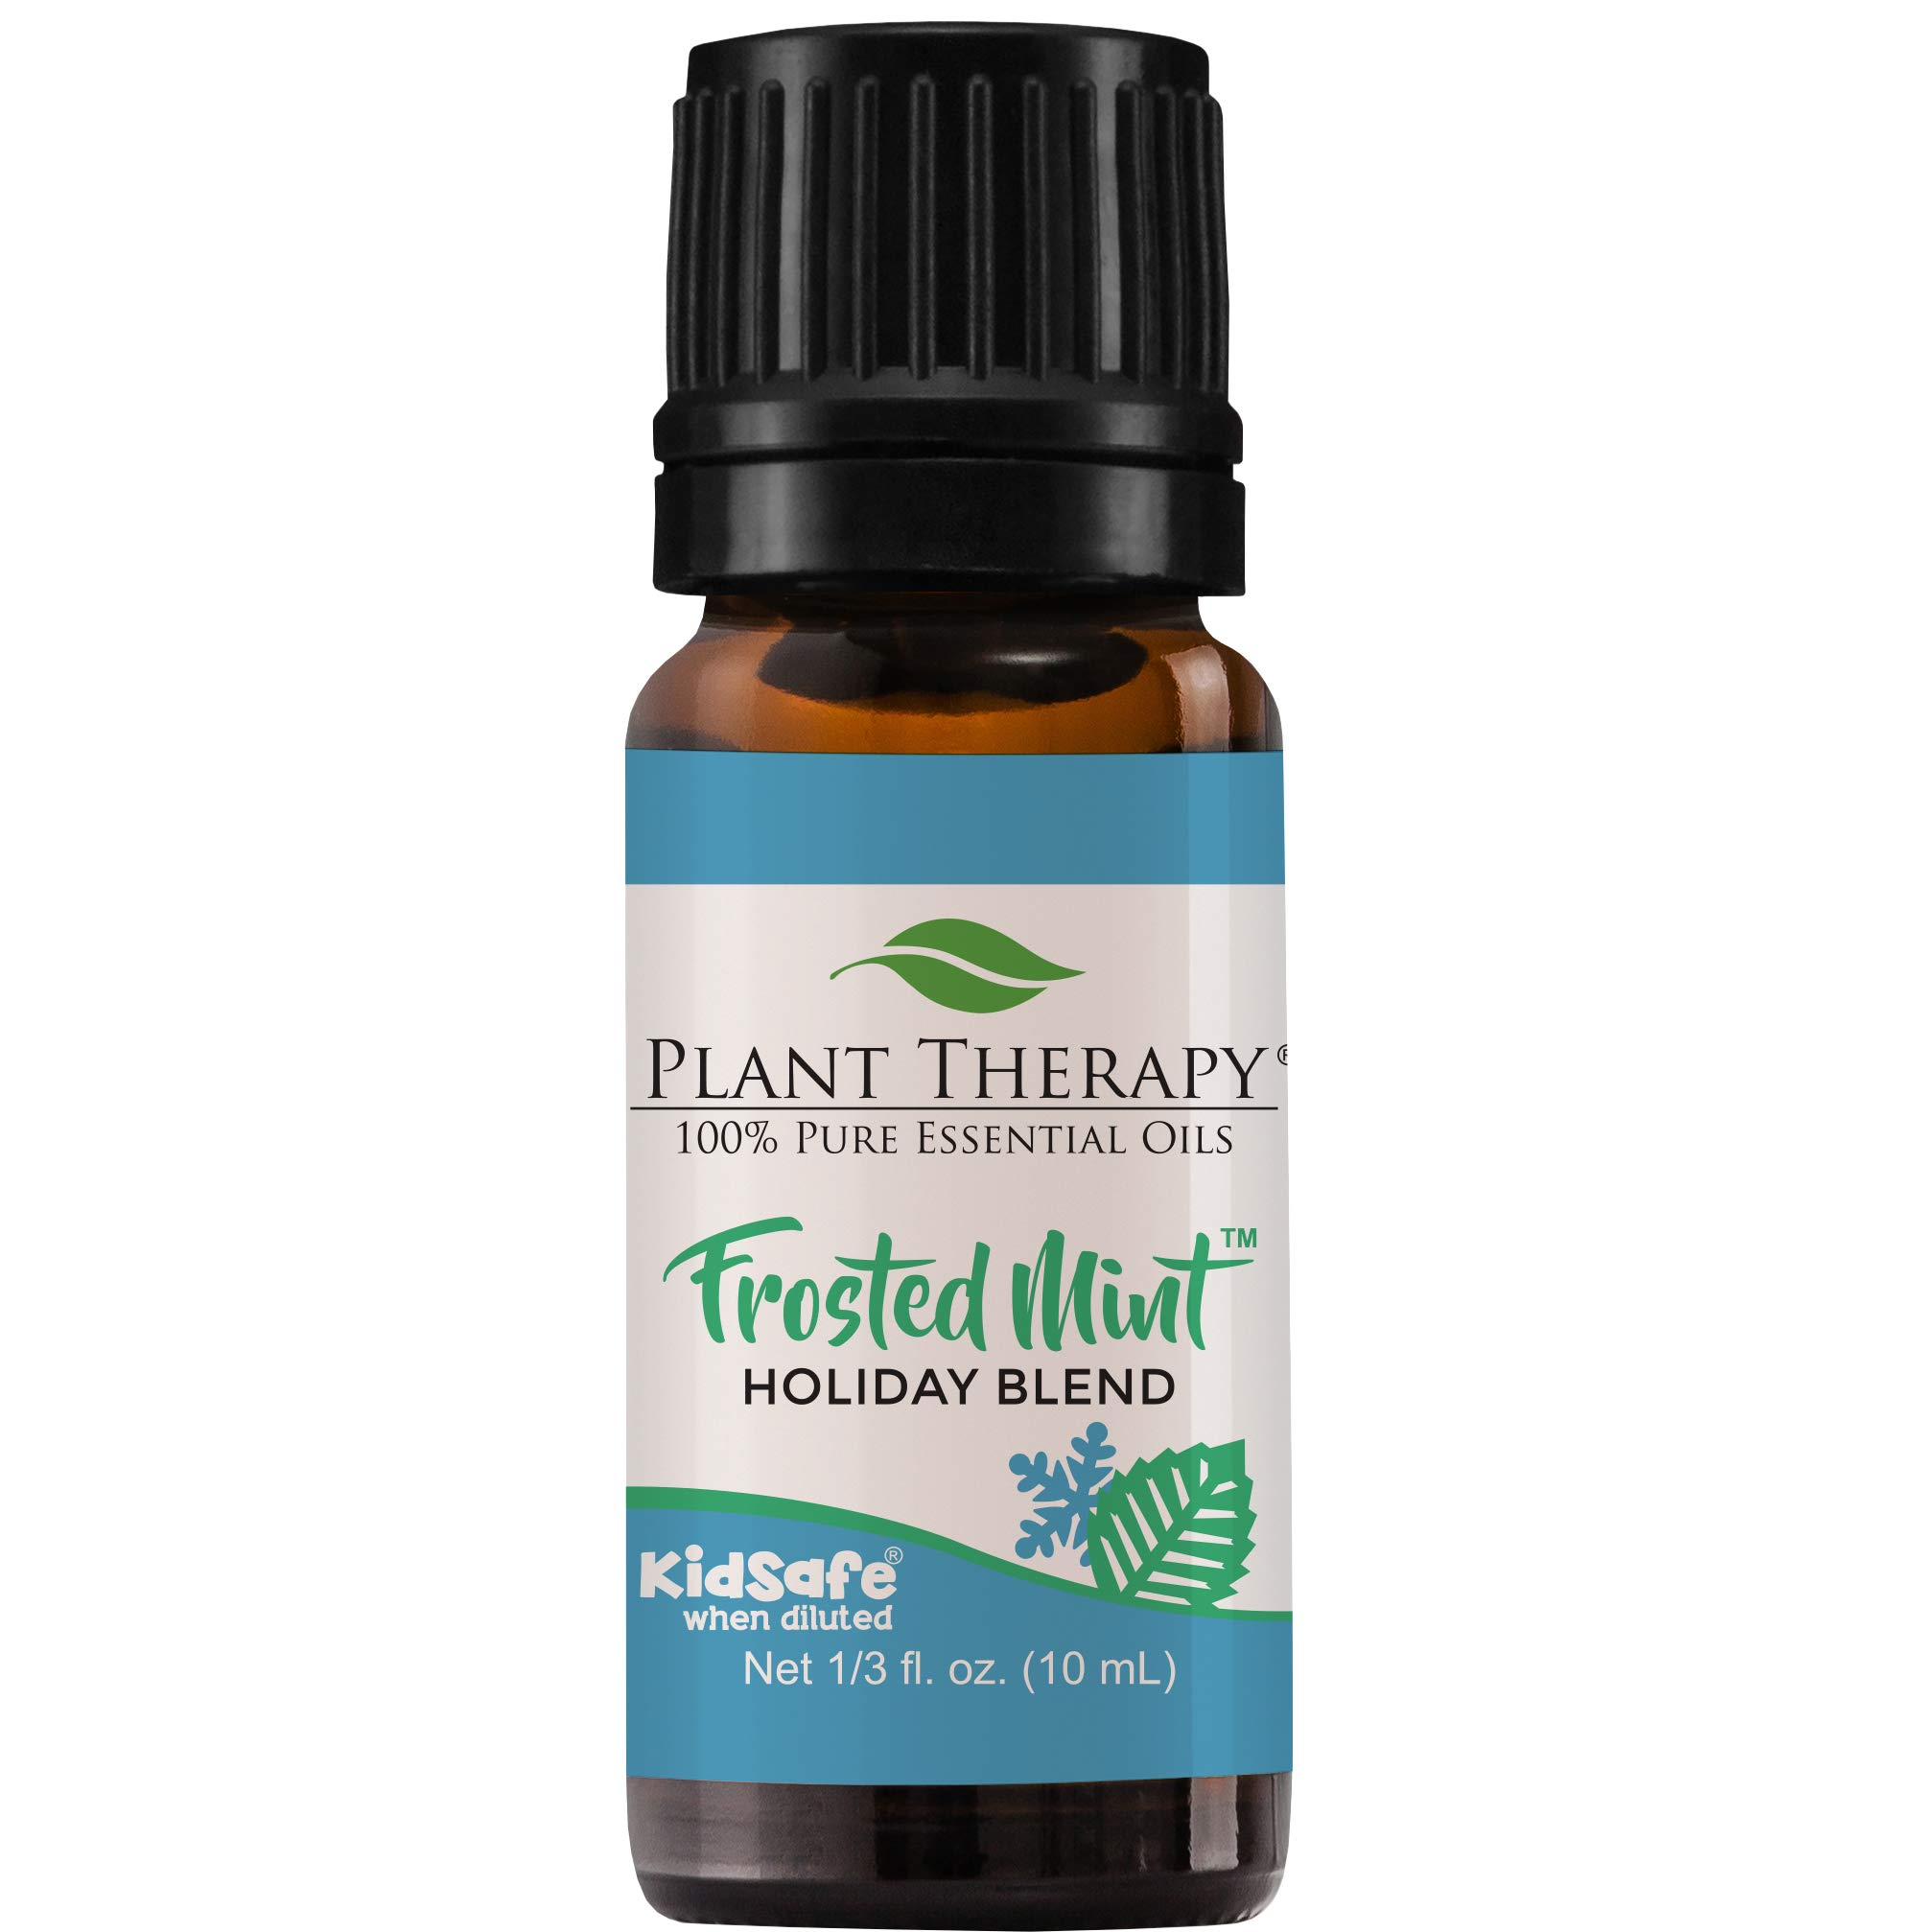 Plant Therapy Essential Oil | Frosted Mint Holiday Blend | Therapeutic Grade, 100% Pure | Natural, Undiluted | 10 mL (1/3 oz)